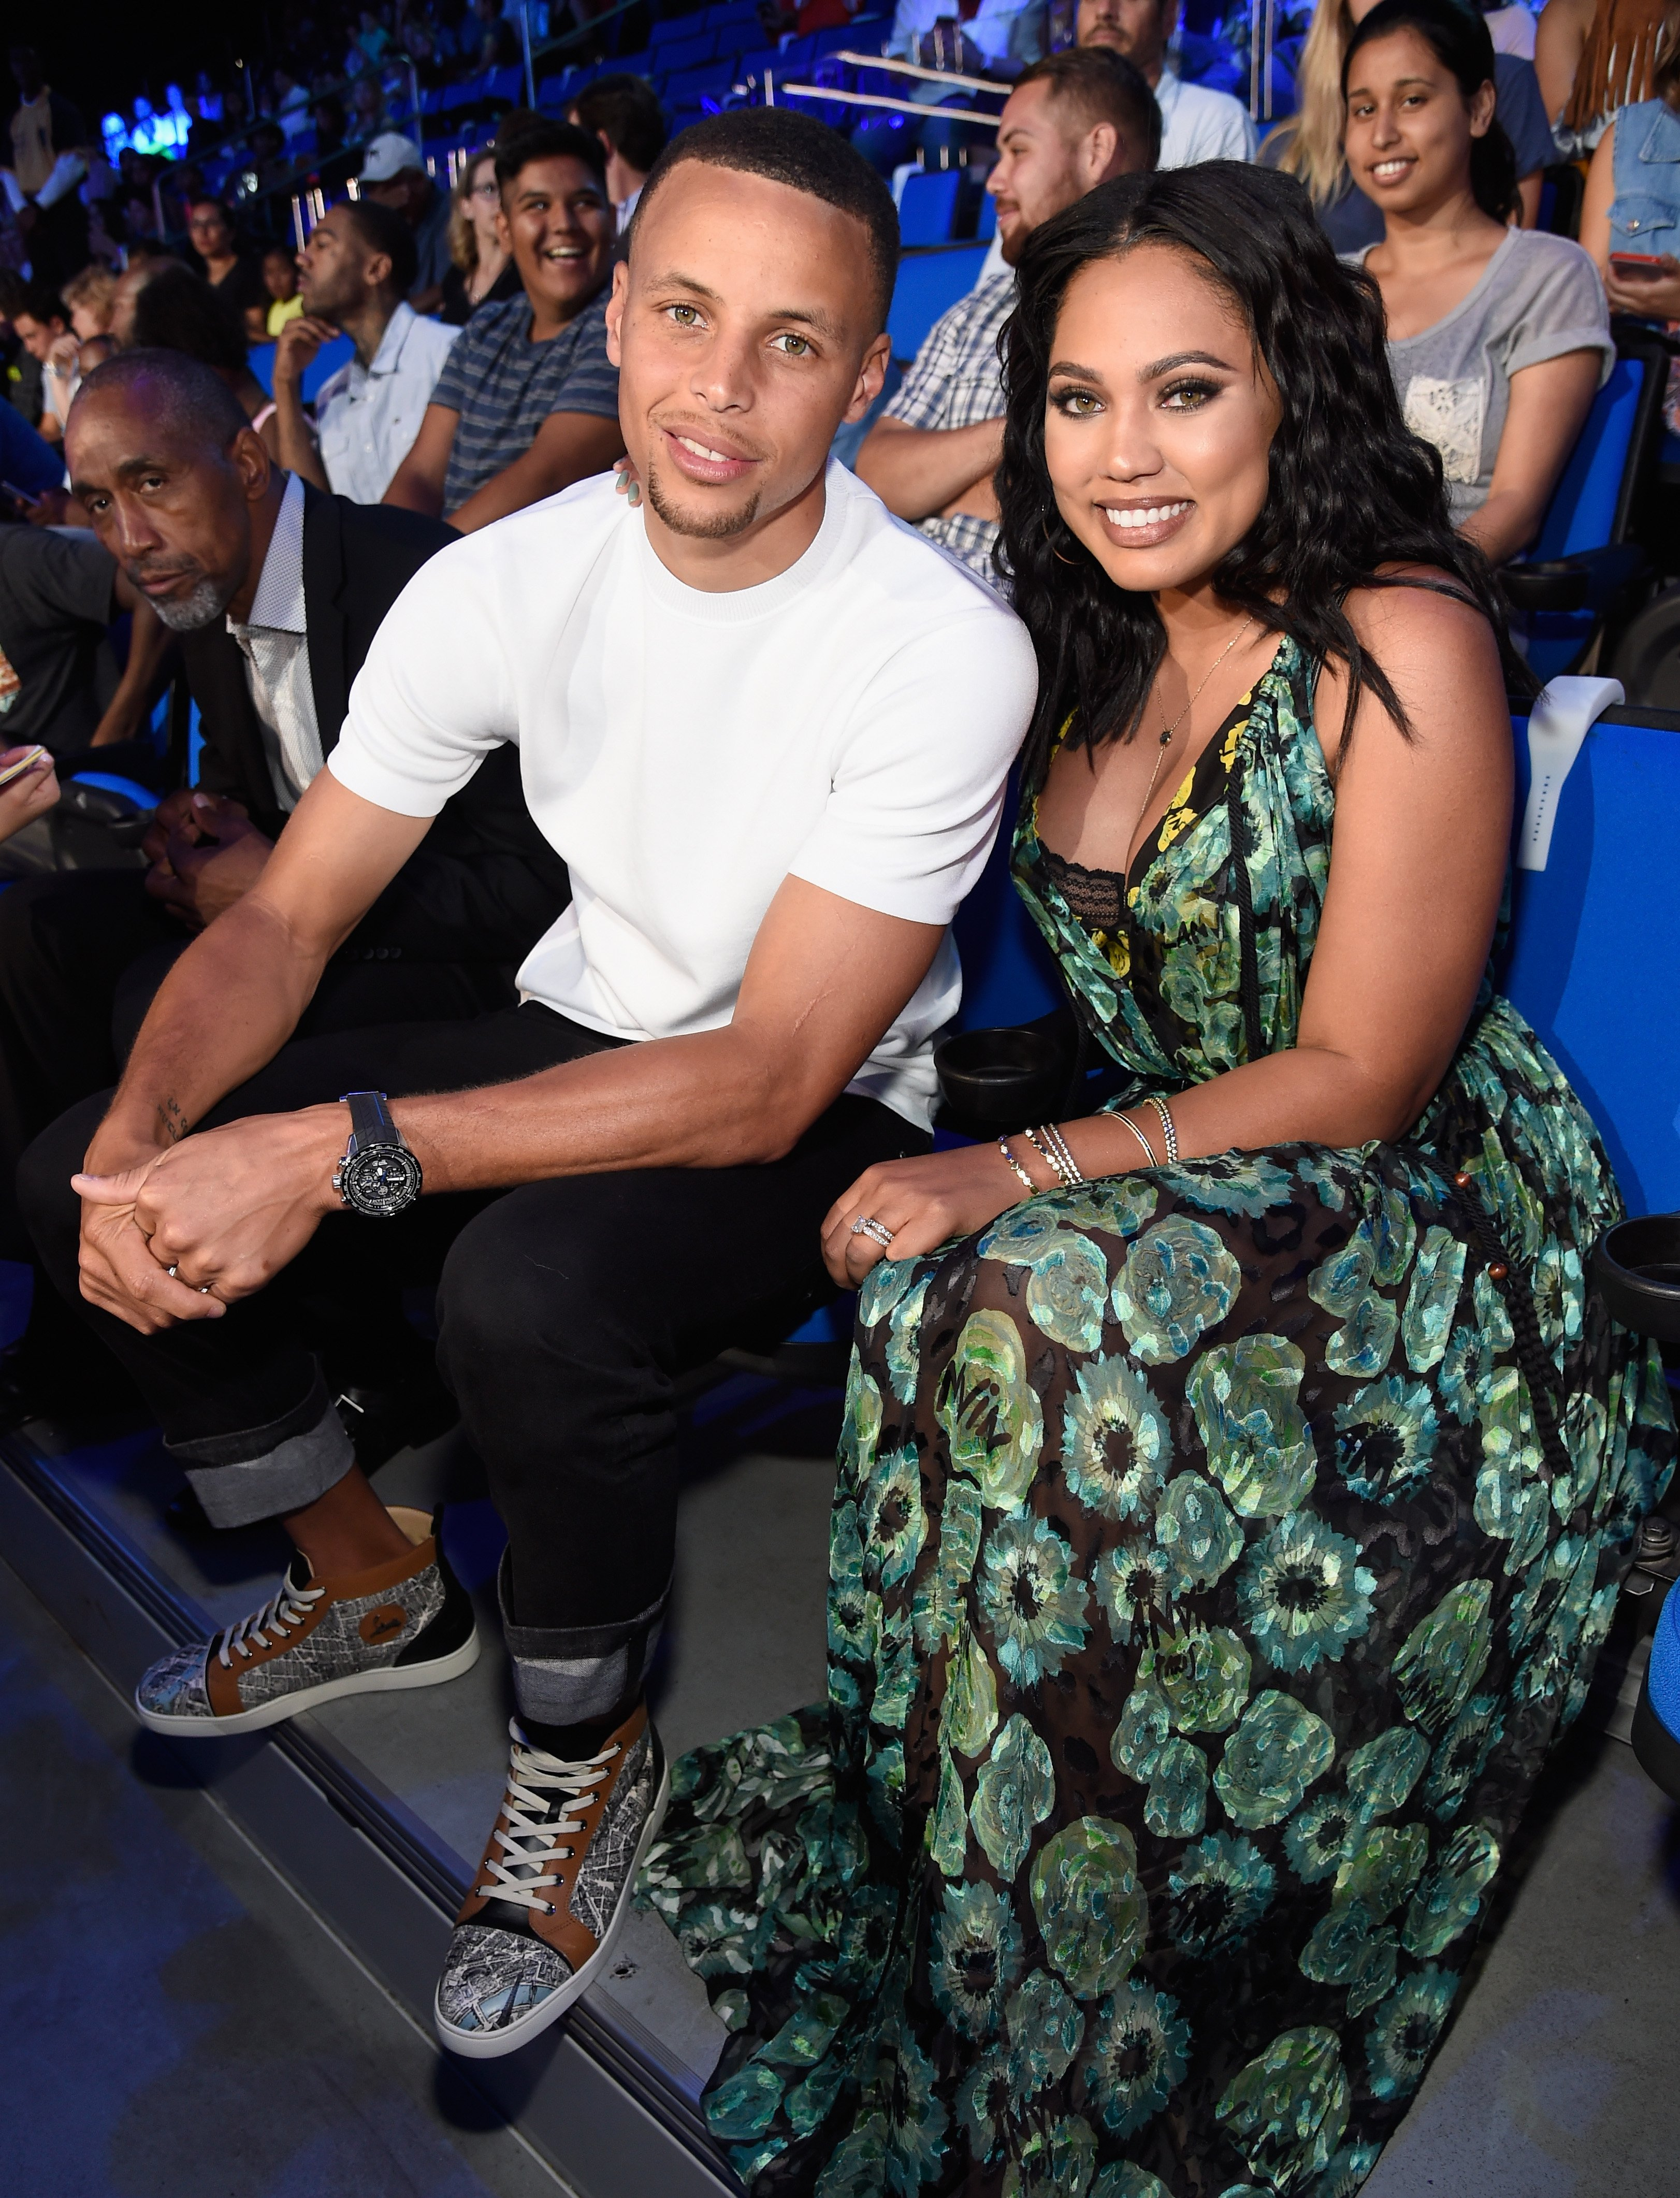 Ayesha and Stephen Curry attend the Nickelodeon Kids' Choice Sports Awards 2016 on July 14, 2016 in Westwood, California.   Source: Getty Images